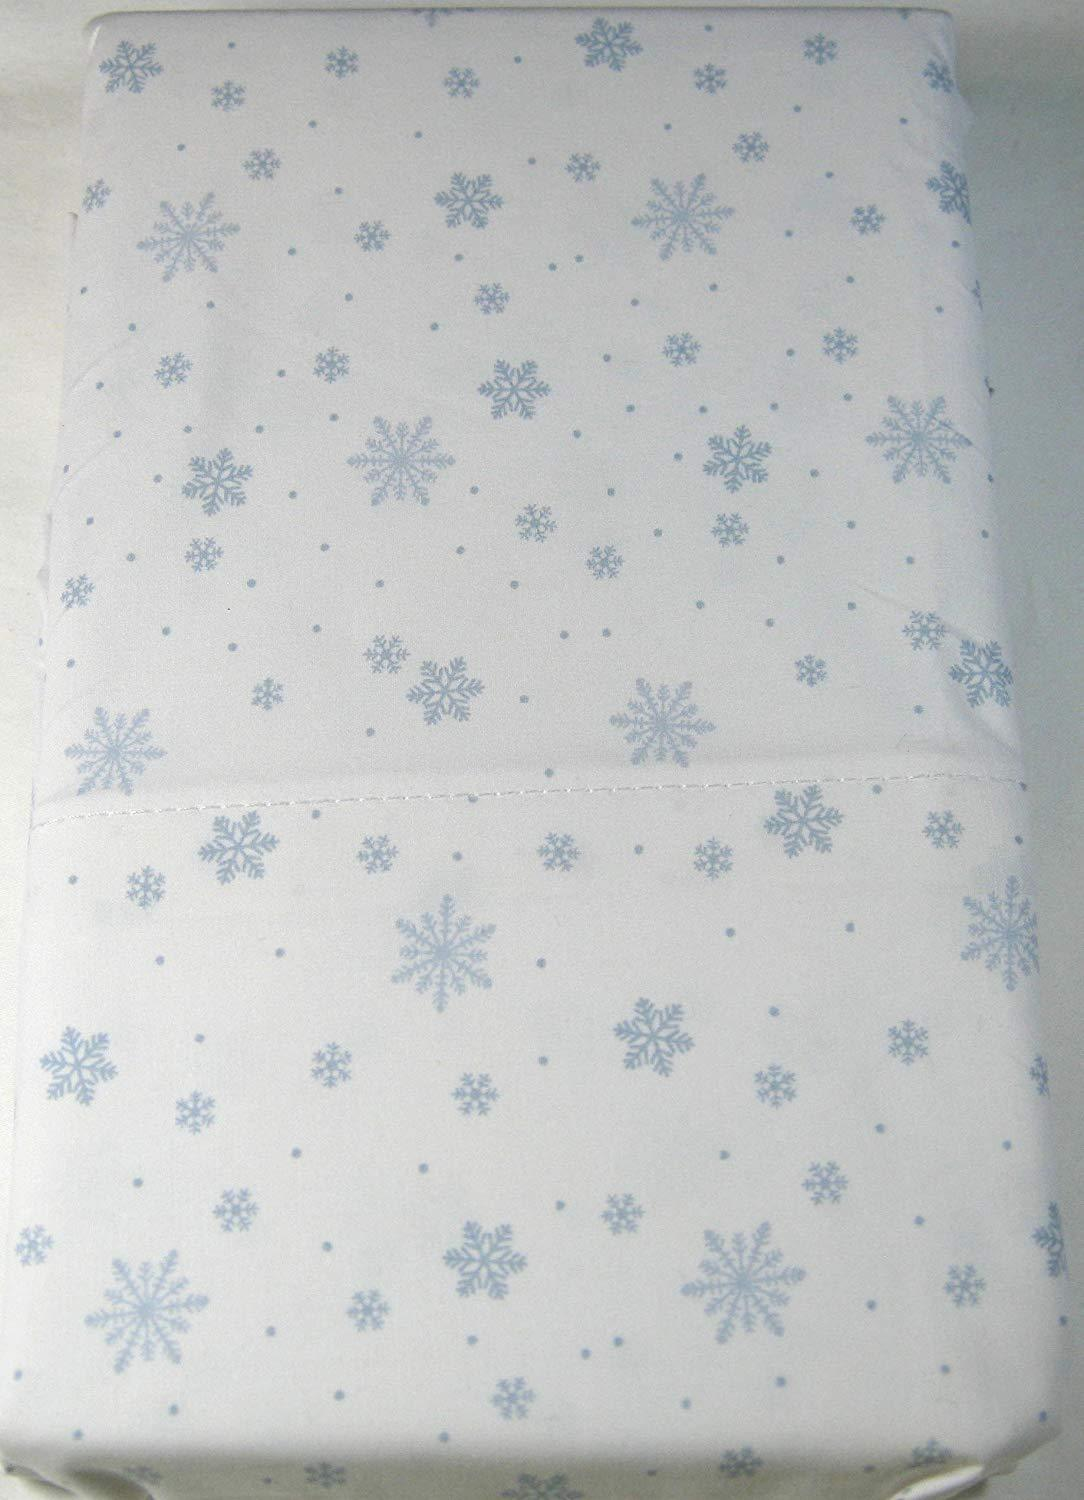 Ralph Lauren Blue Snowflakes on White Pillowcases Standard